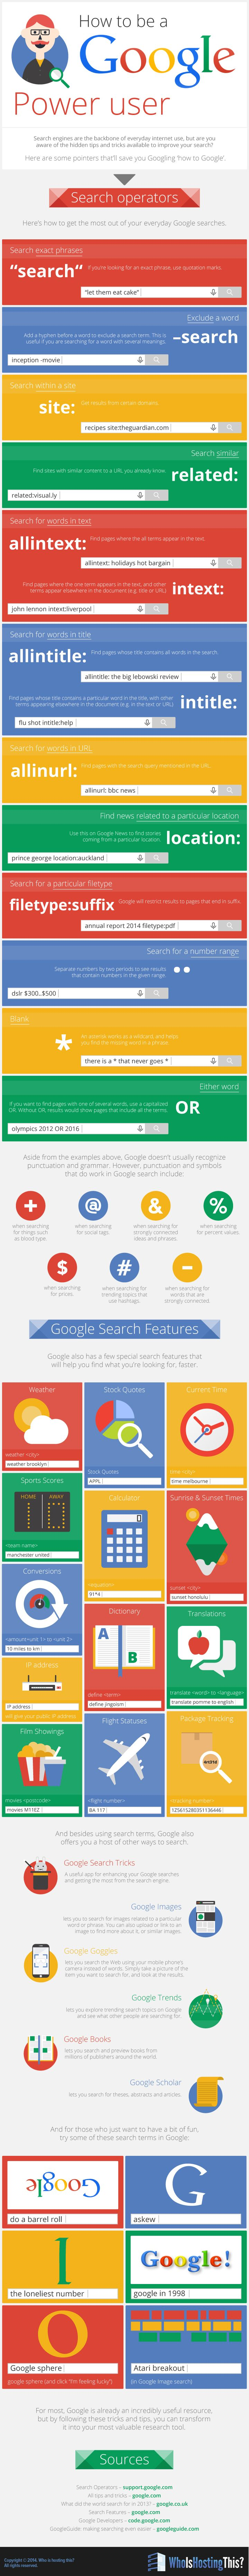 Get some tips and tricks for searching Google like a pro (via @HubSpot)